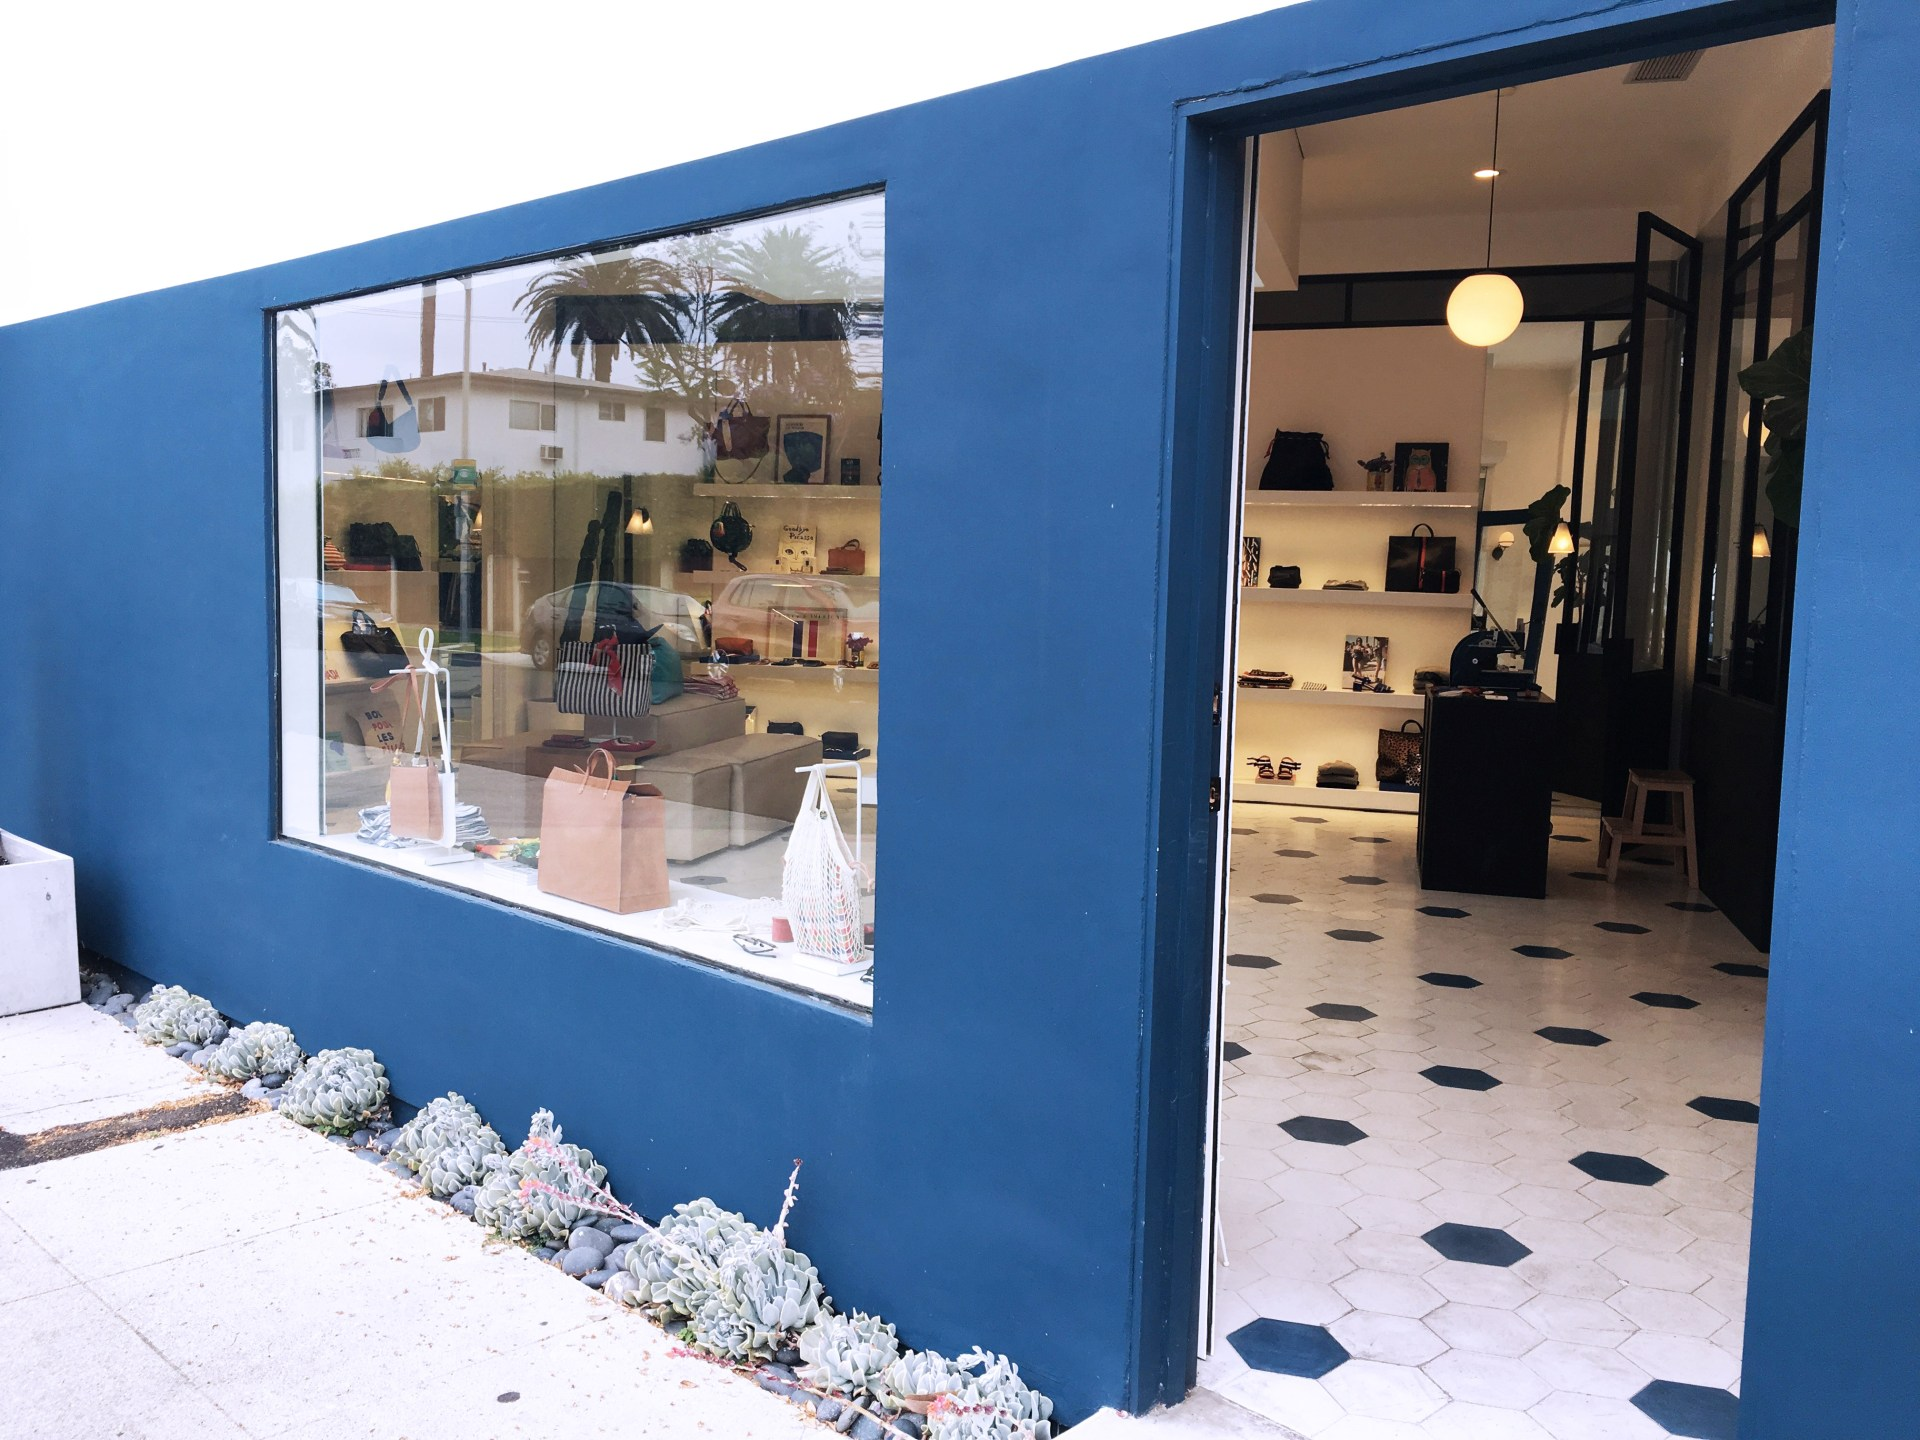 Los Angeles Shopping Guide: Melrose Avenue – The Little Curator